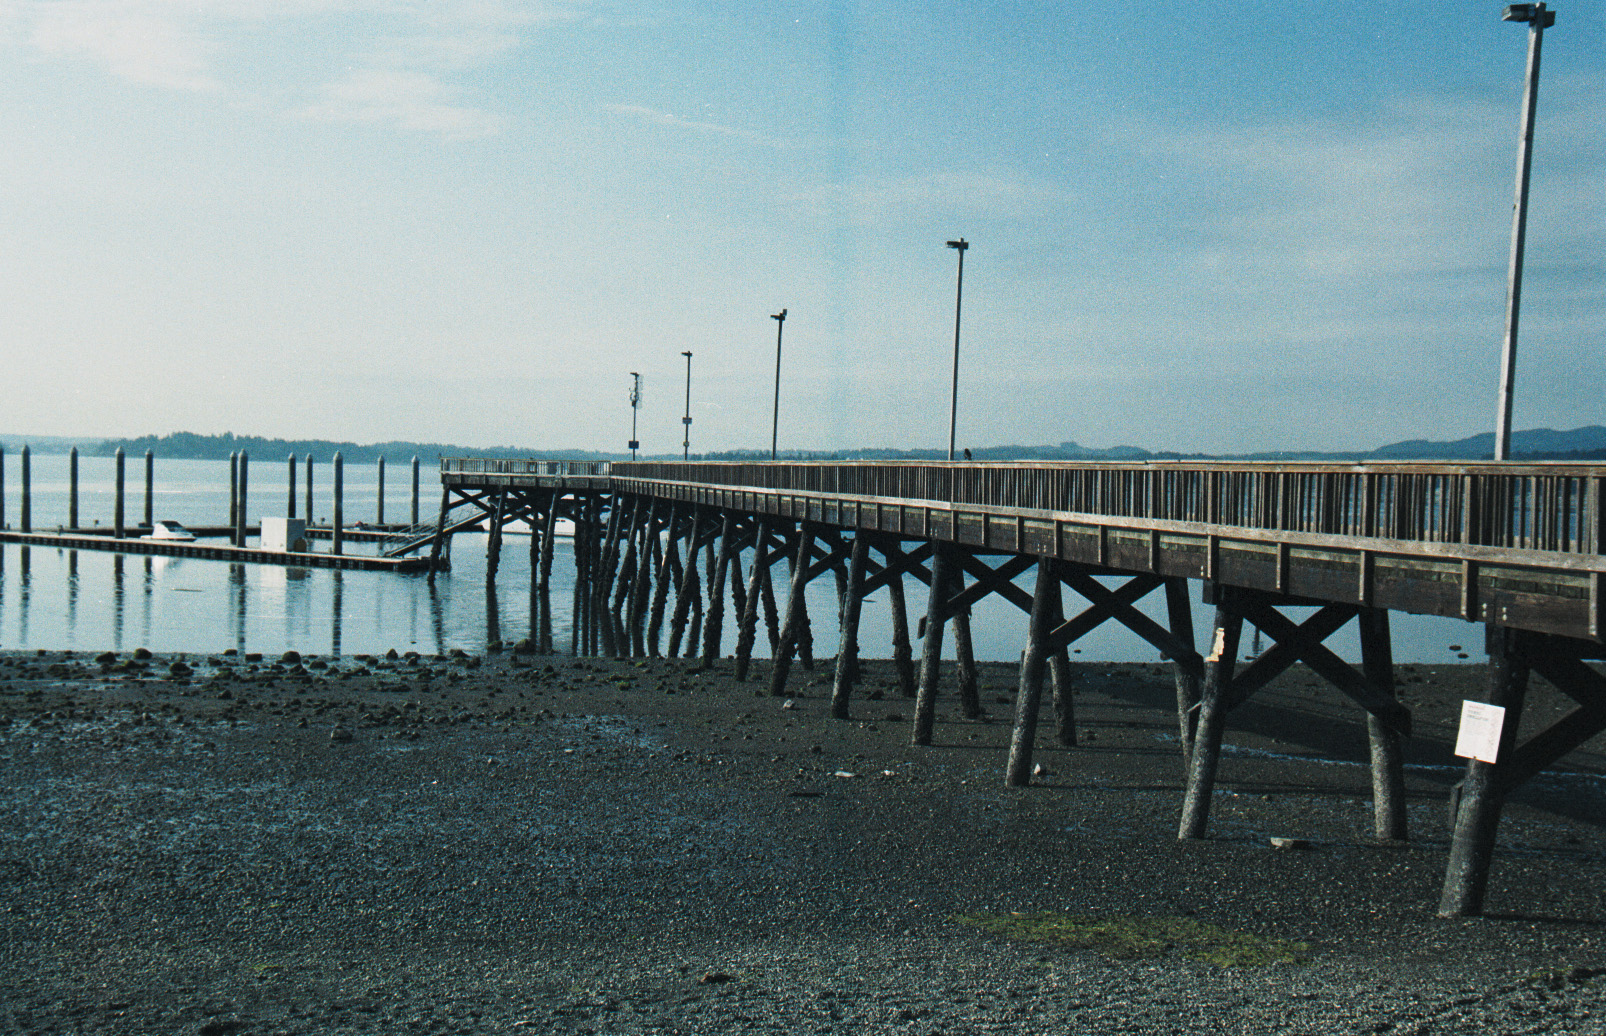 Port of Silverdale